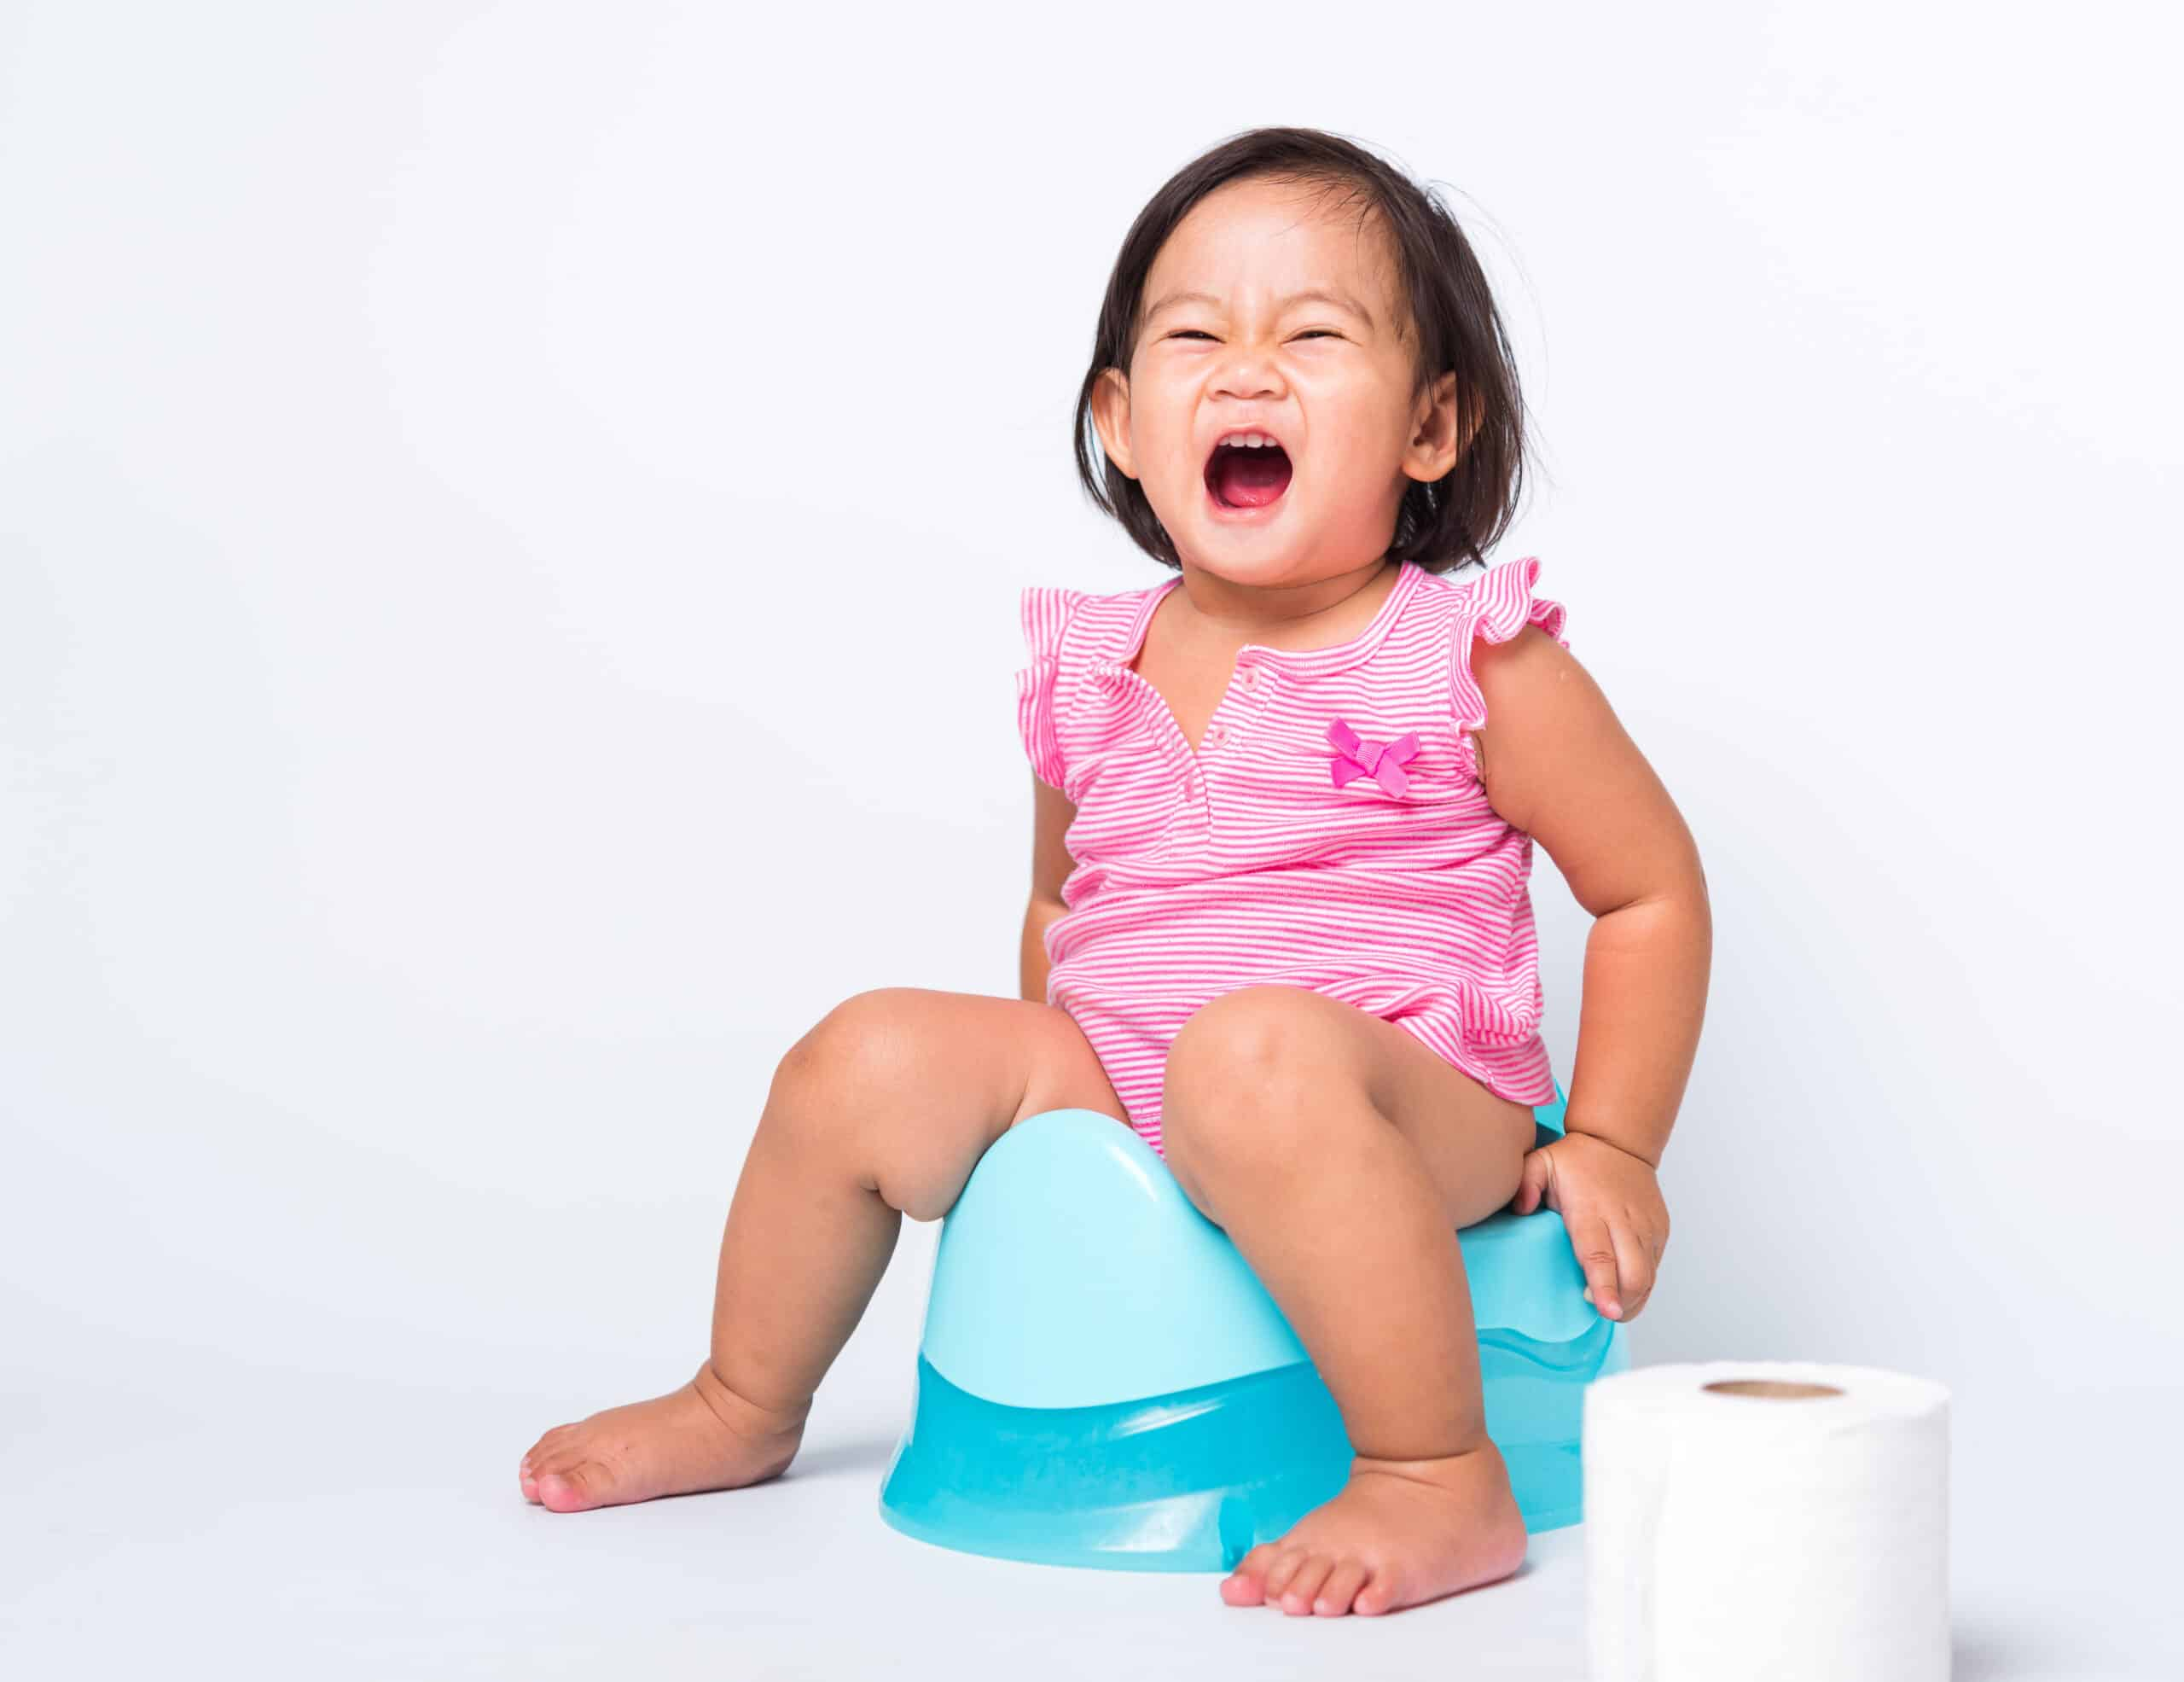 Asian Little Cute Baby Child Girl Education Training To Sitting